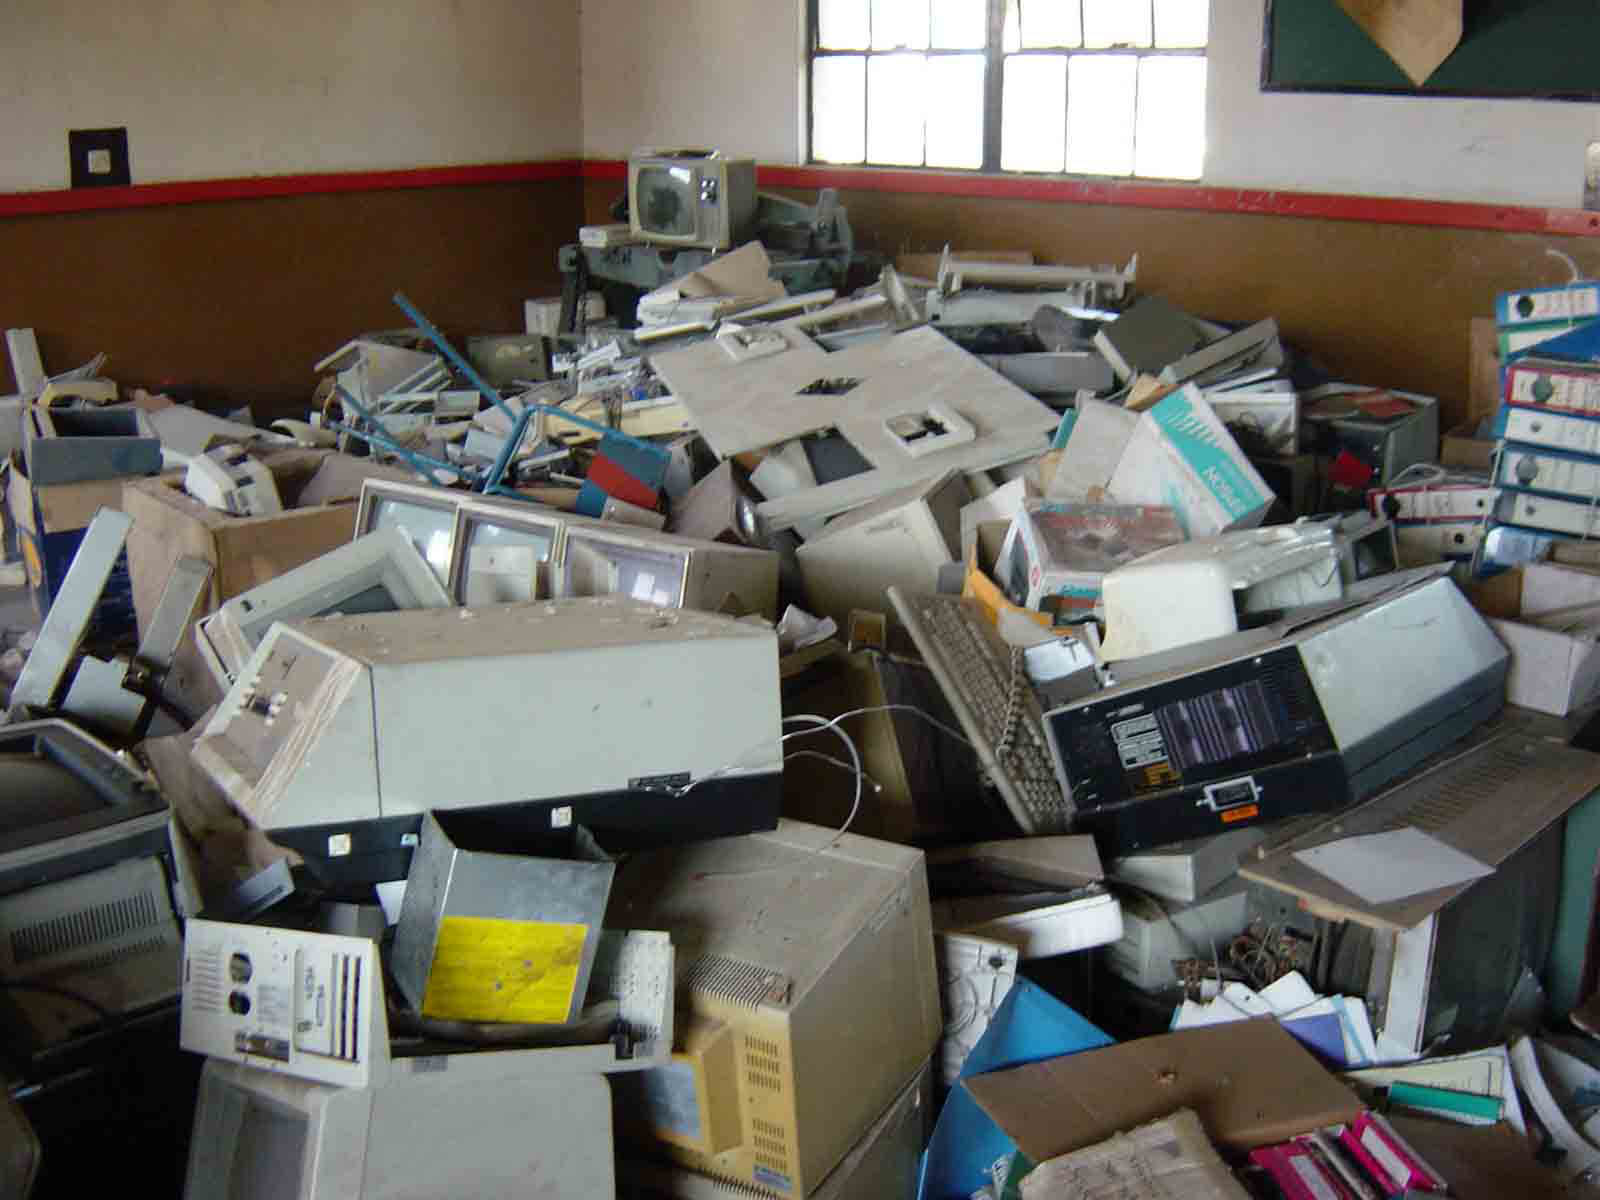 Computer waste in Starehe Boys' School, Nairobi in the early 2000s